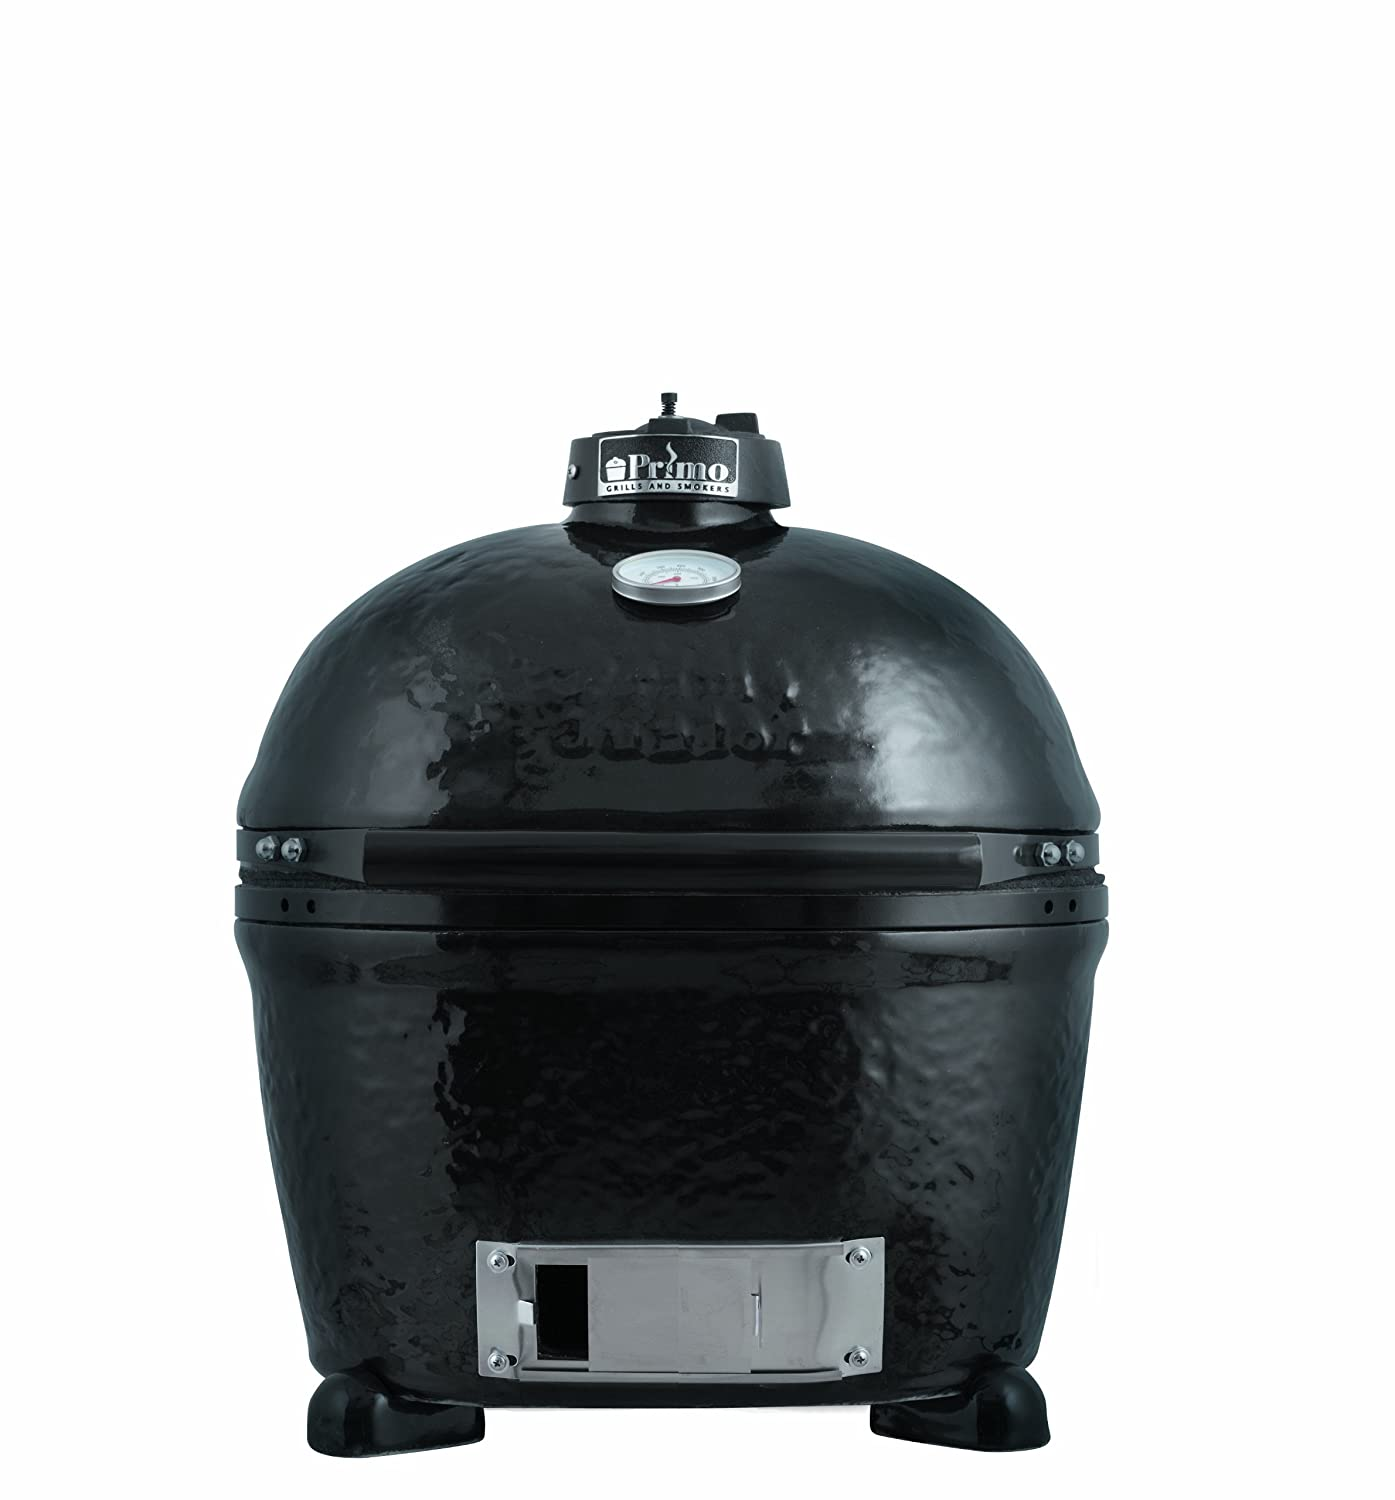 Primo Oval Junior – Keramik Grill Made in USA